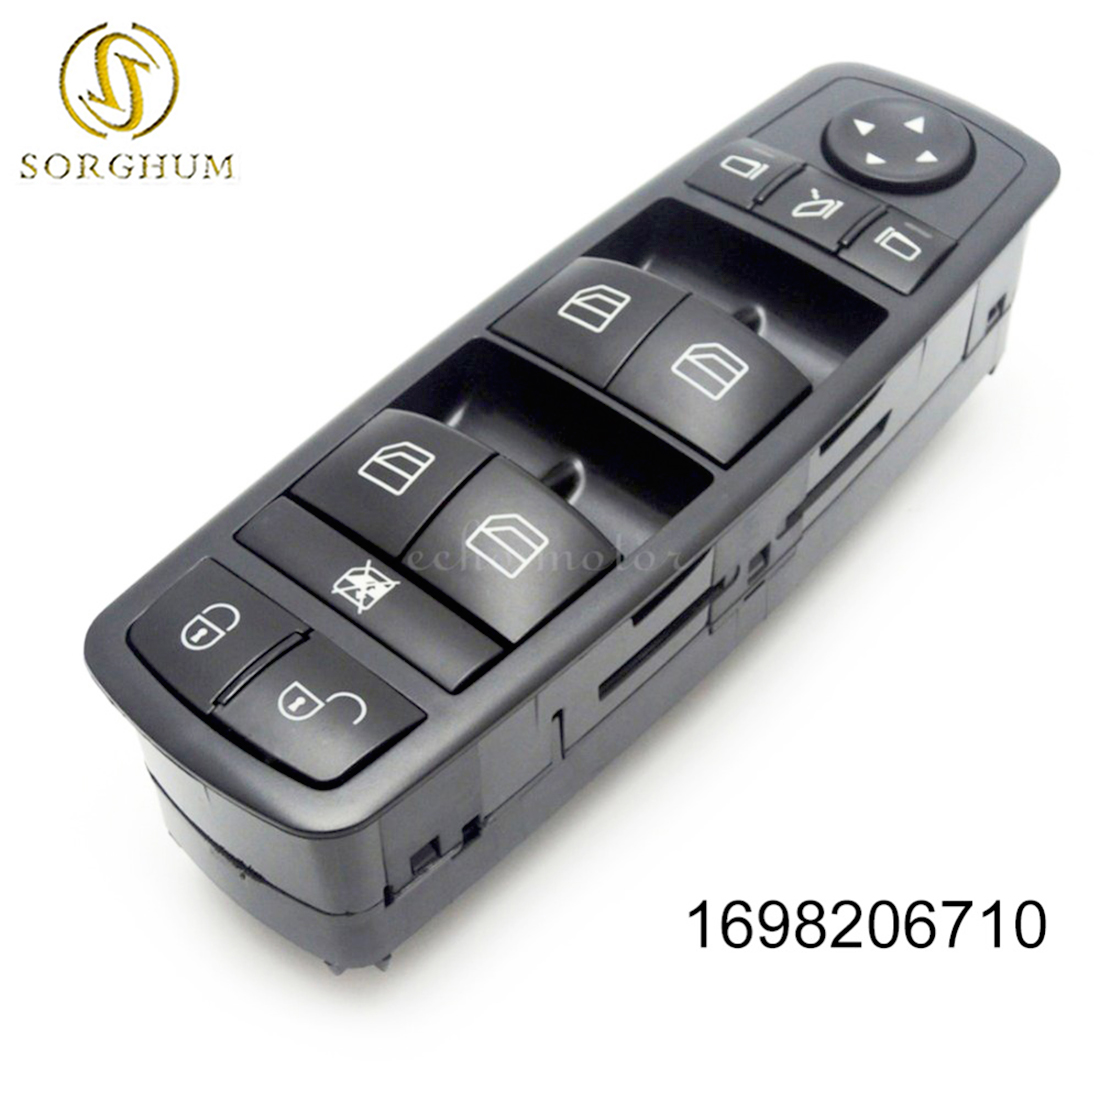 New A1698206710 <font><b>1698206710</b></font> Power Window lock Switch Fits For Mercedes-Benz B-Klasse W245 W169 A-Klasse A 169 820 67 10 image